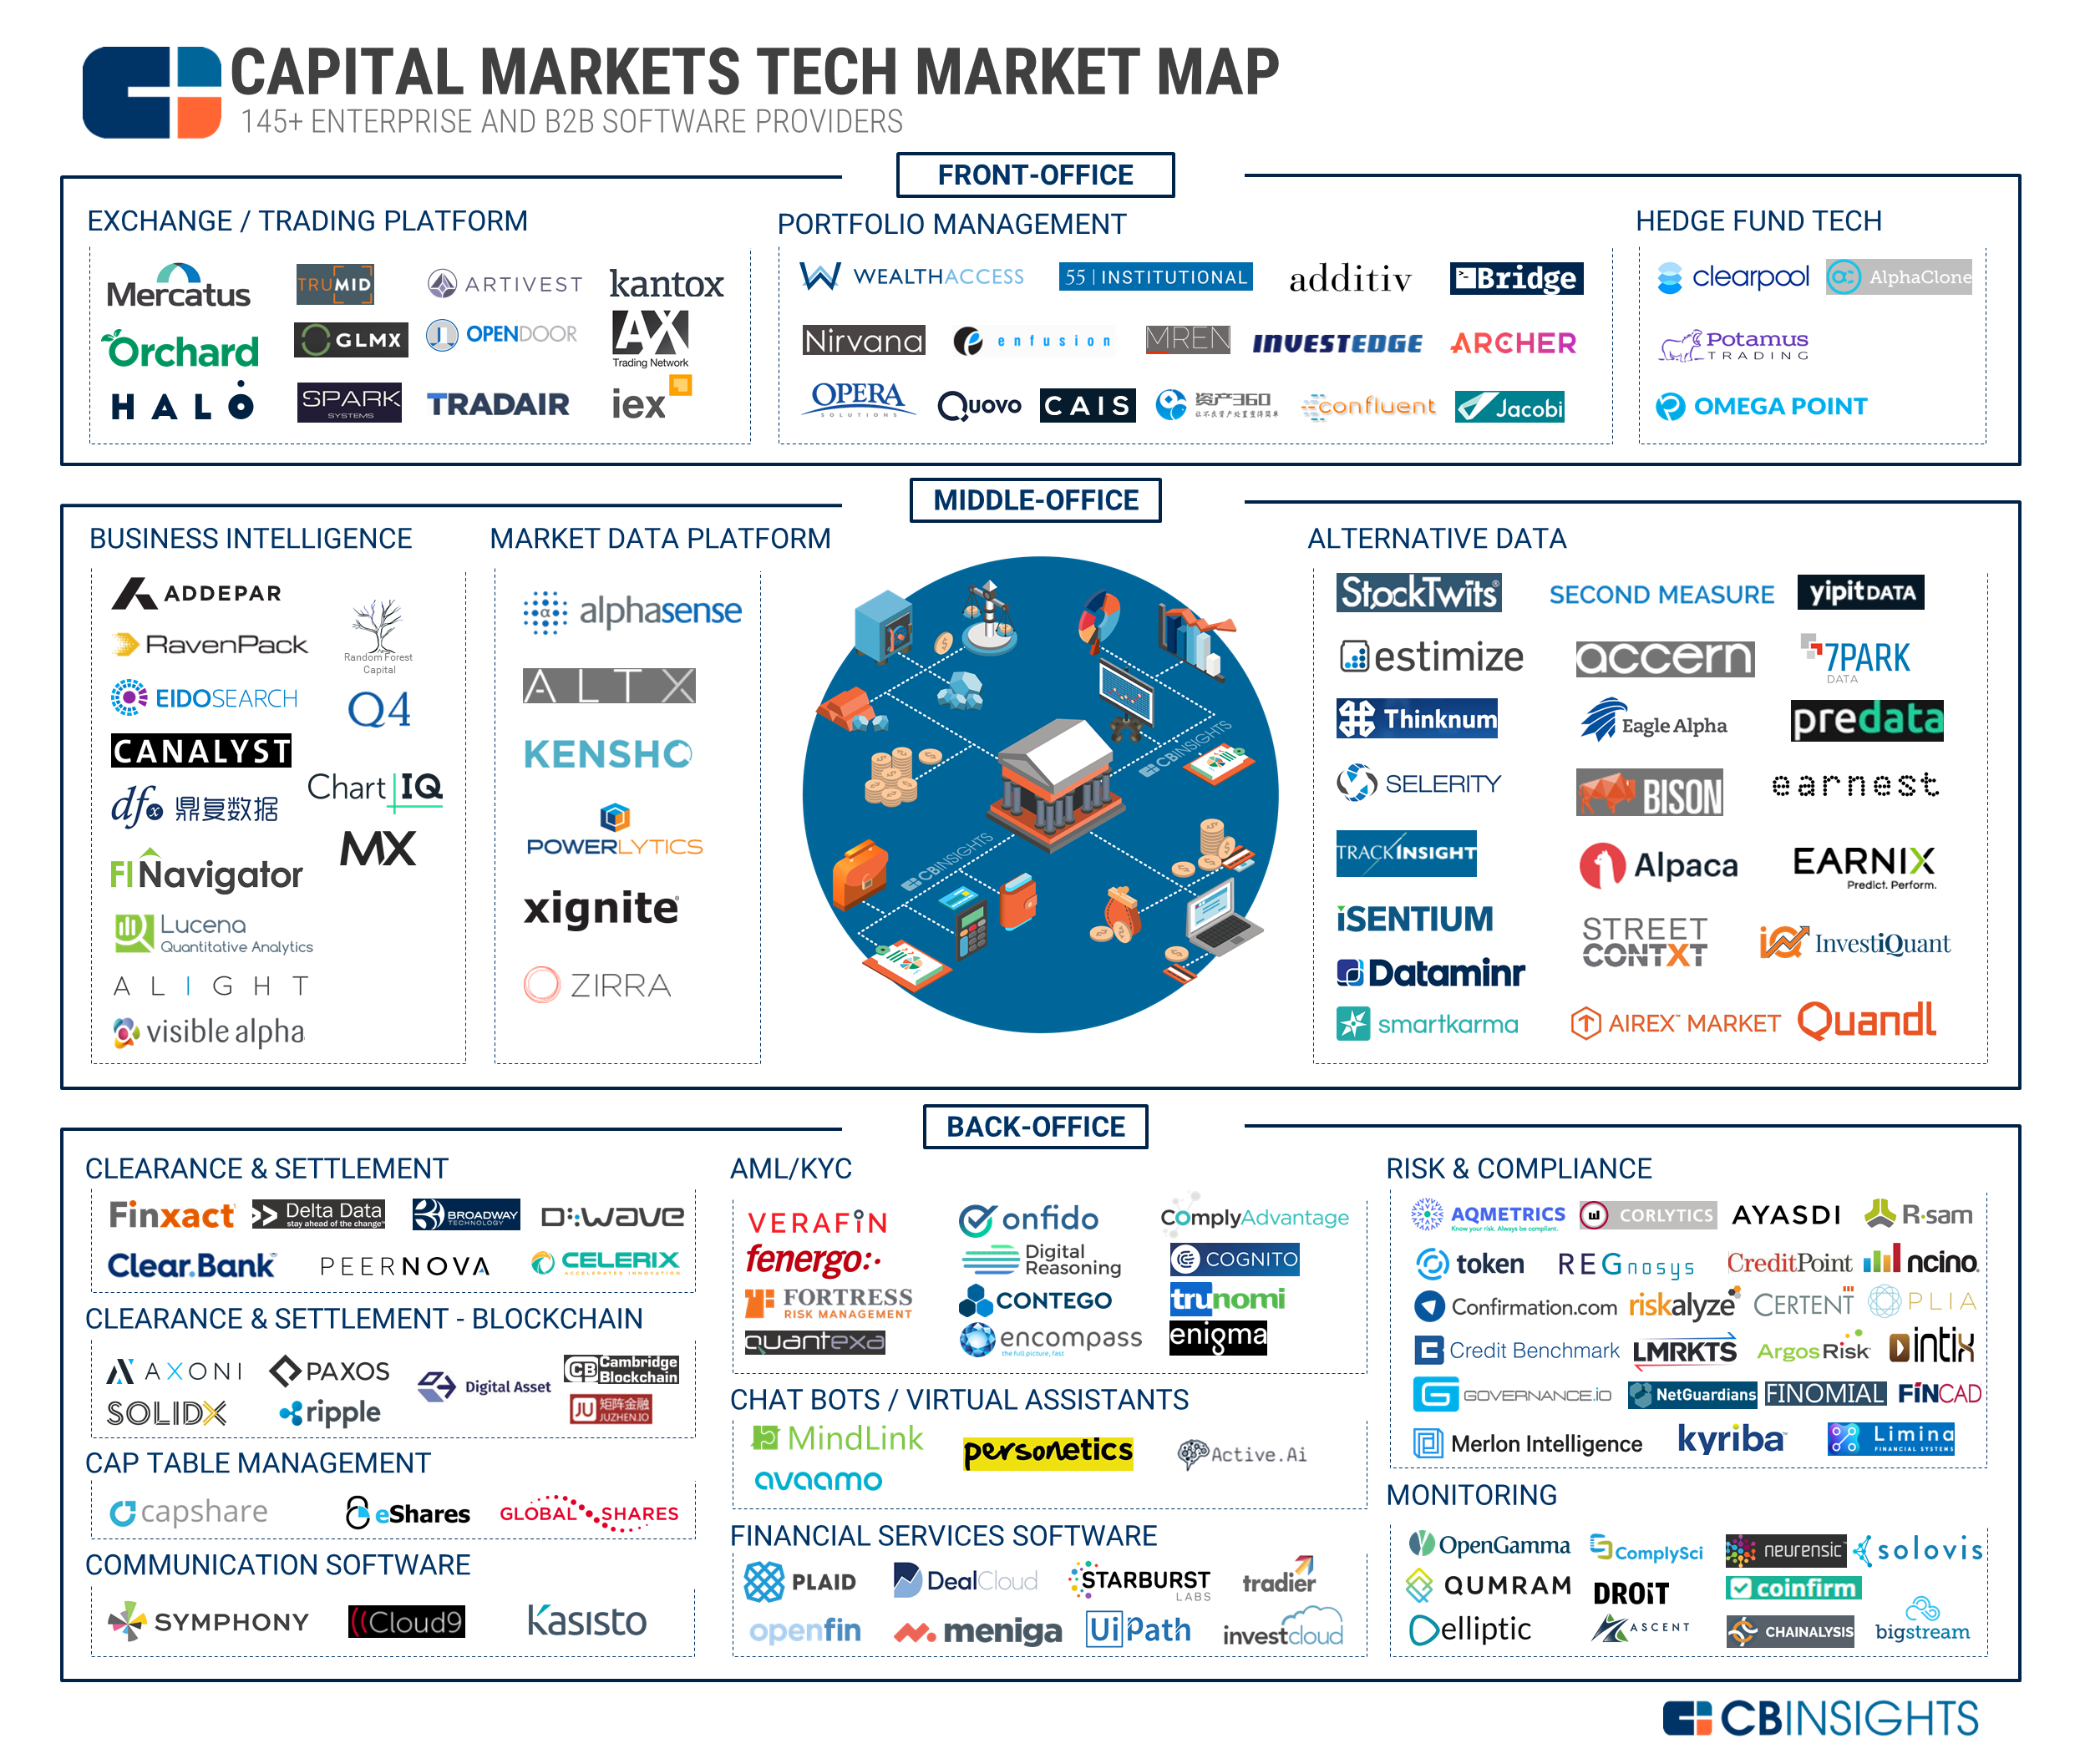 Capital Markets Tech Market Map